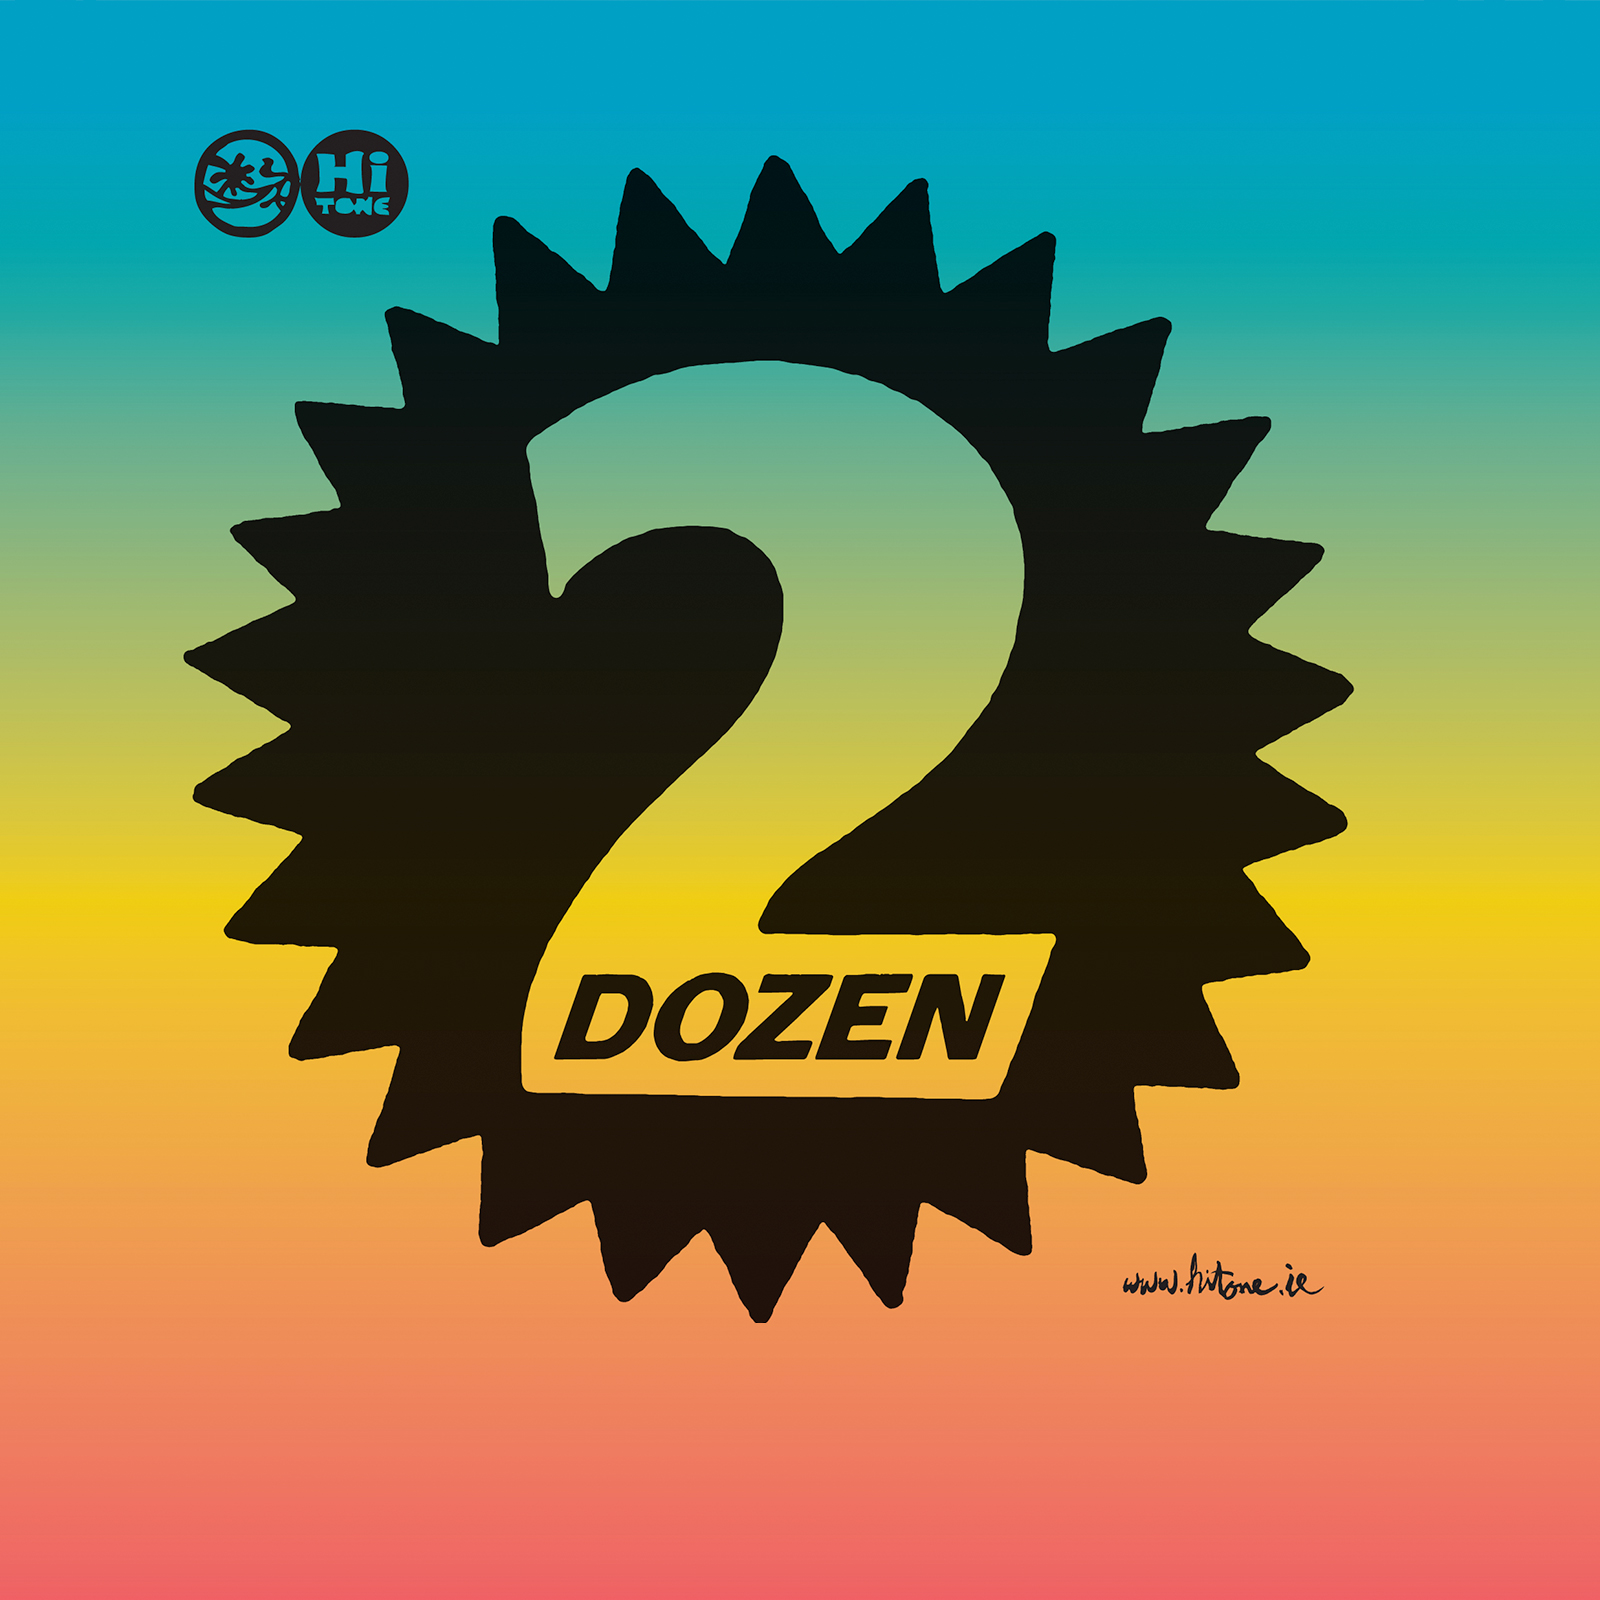 tues_20th_7pm_brhi_tone_and_umack_presents_two_dozen_exhibition_talk